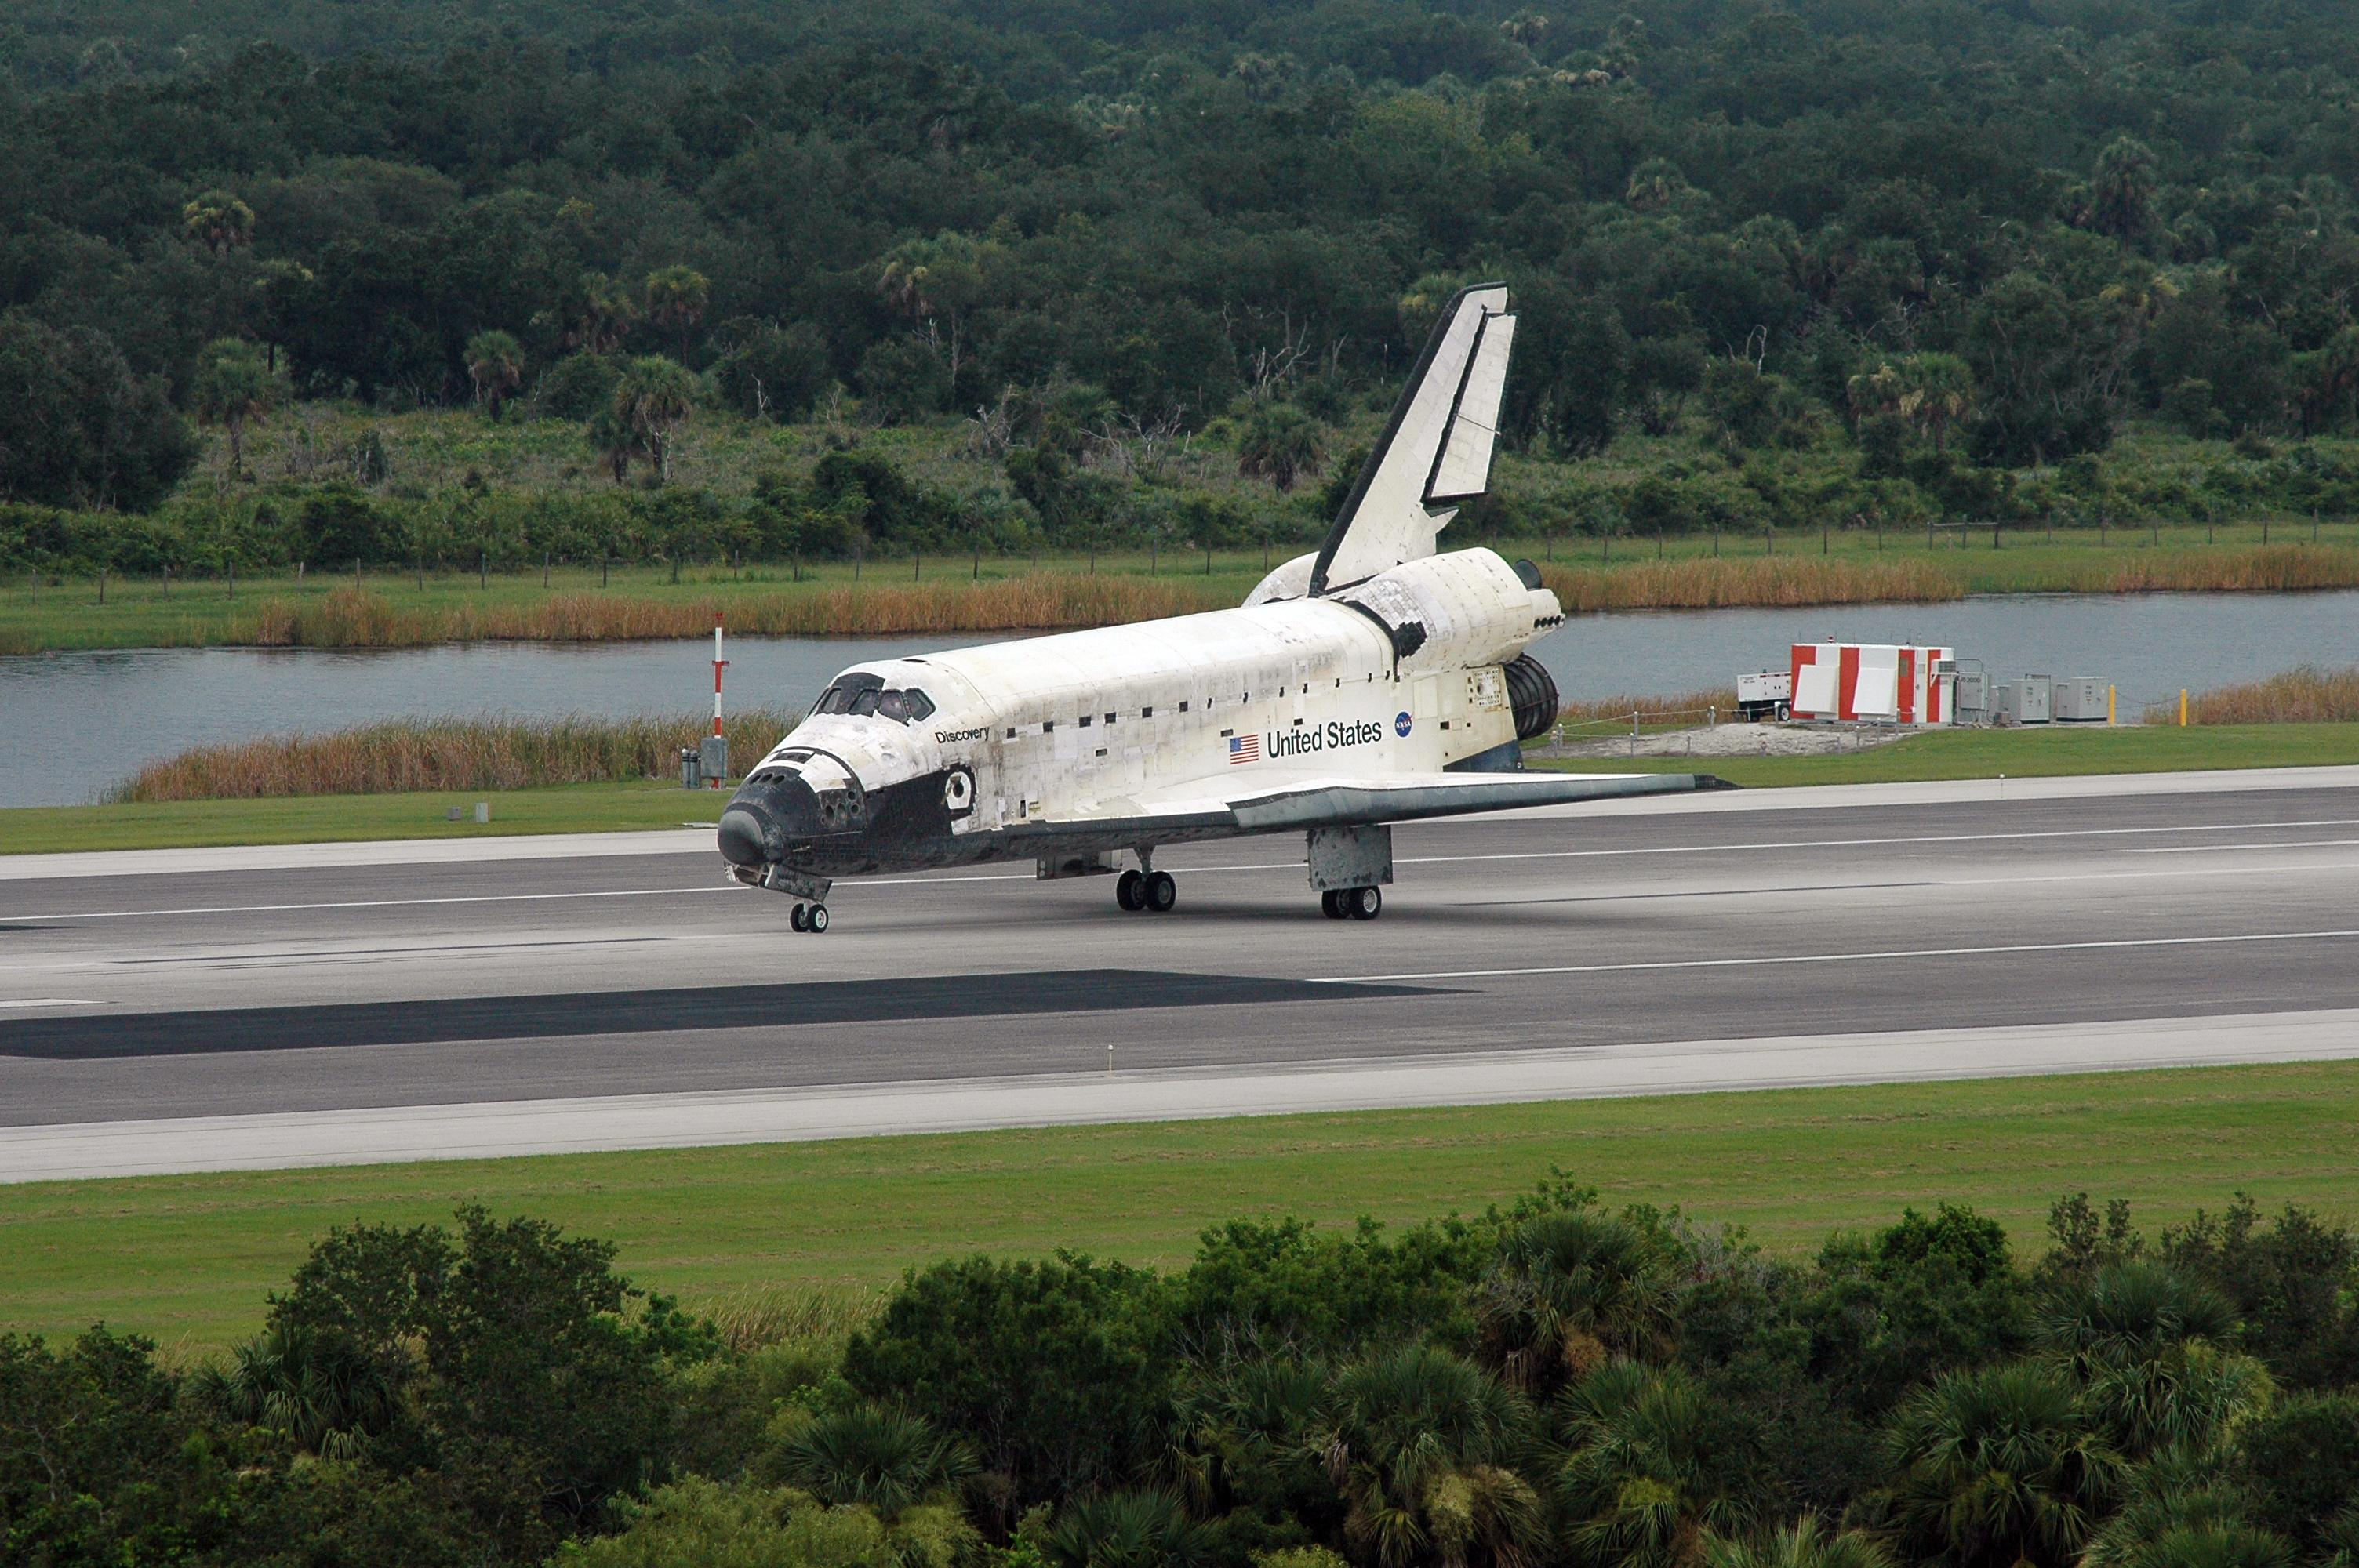 space shuttle landing explained - photo #7